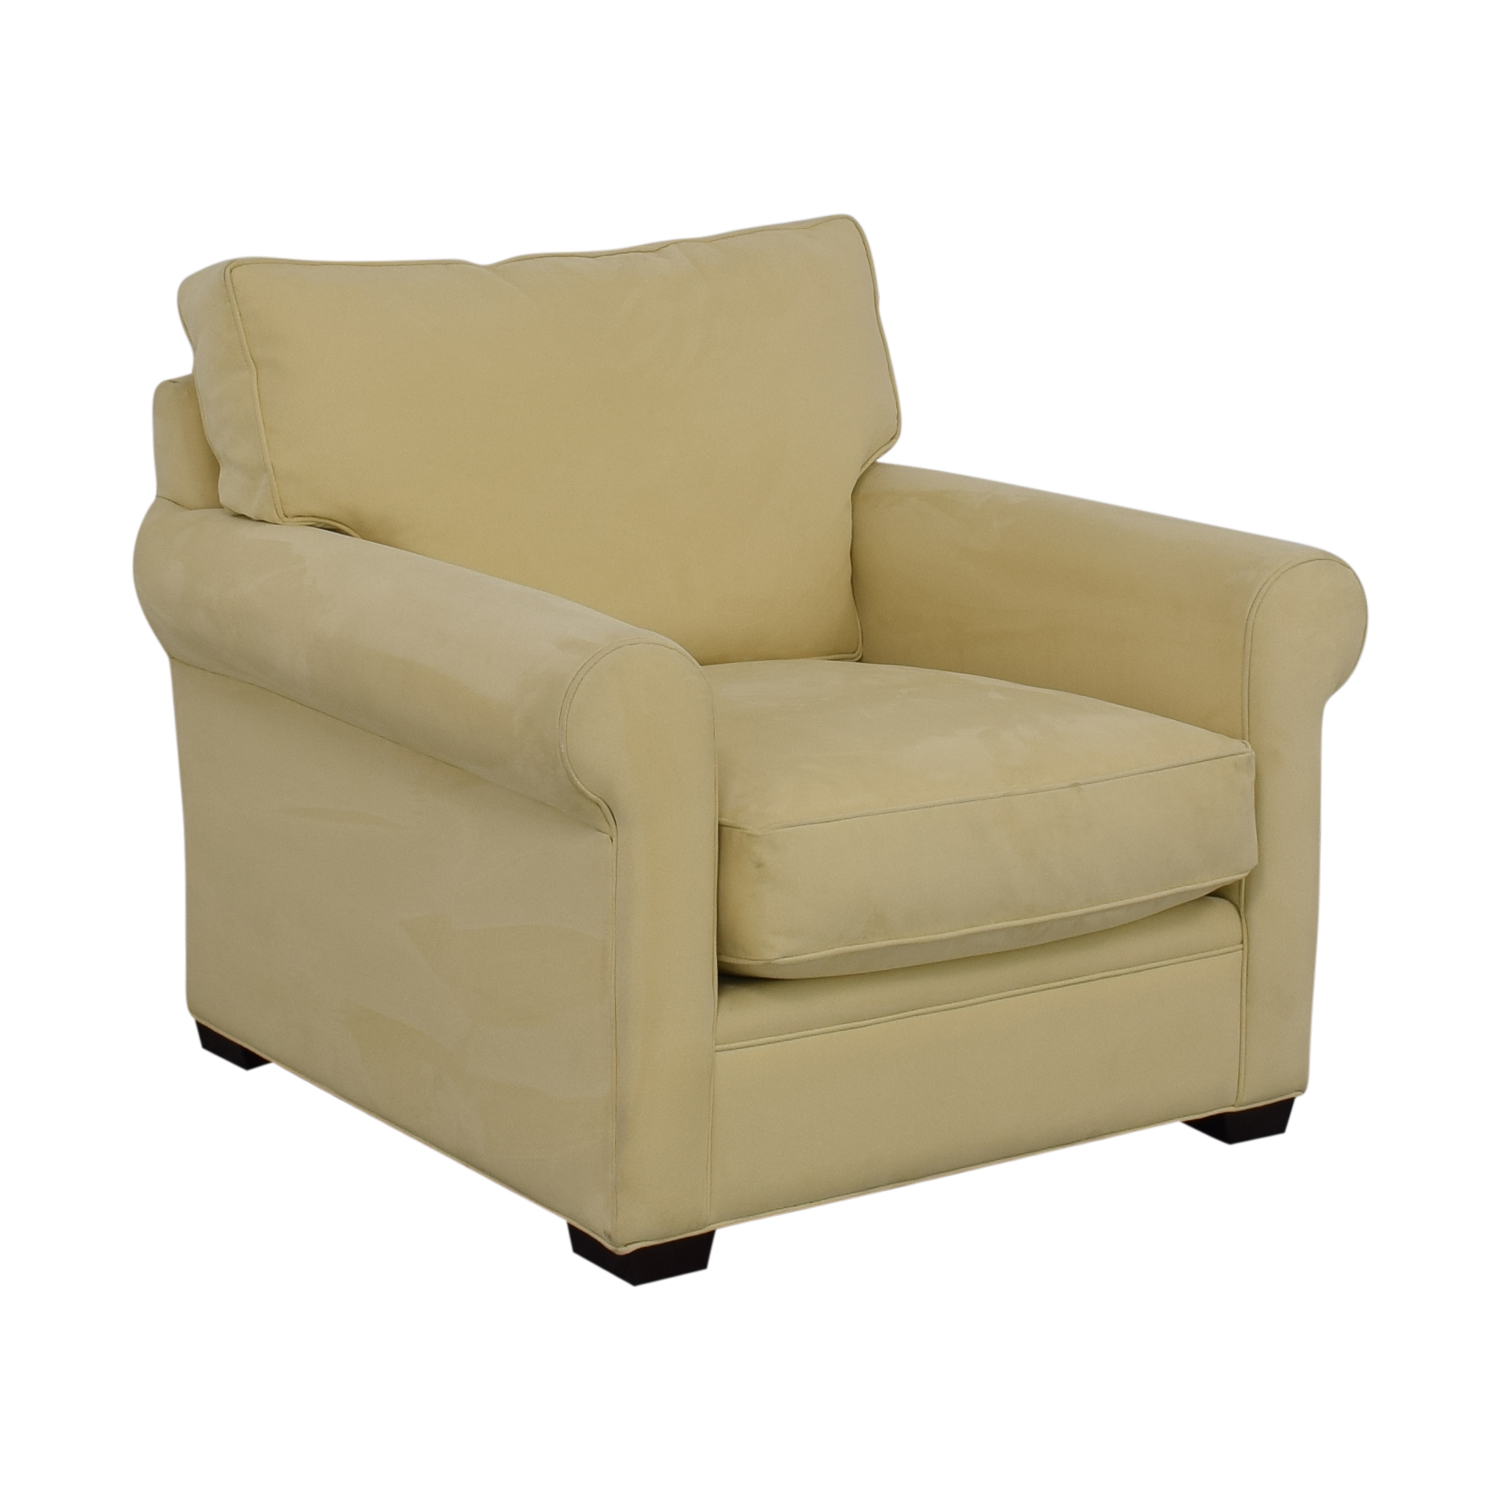 Crate & Barrel Crate & Barrel Yellow Oversized Accent Chair Accent Chairs